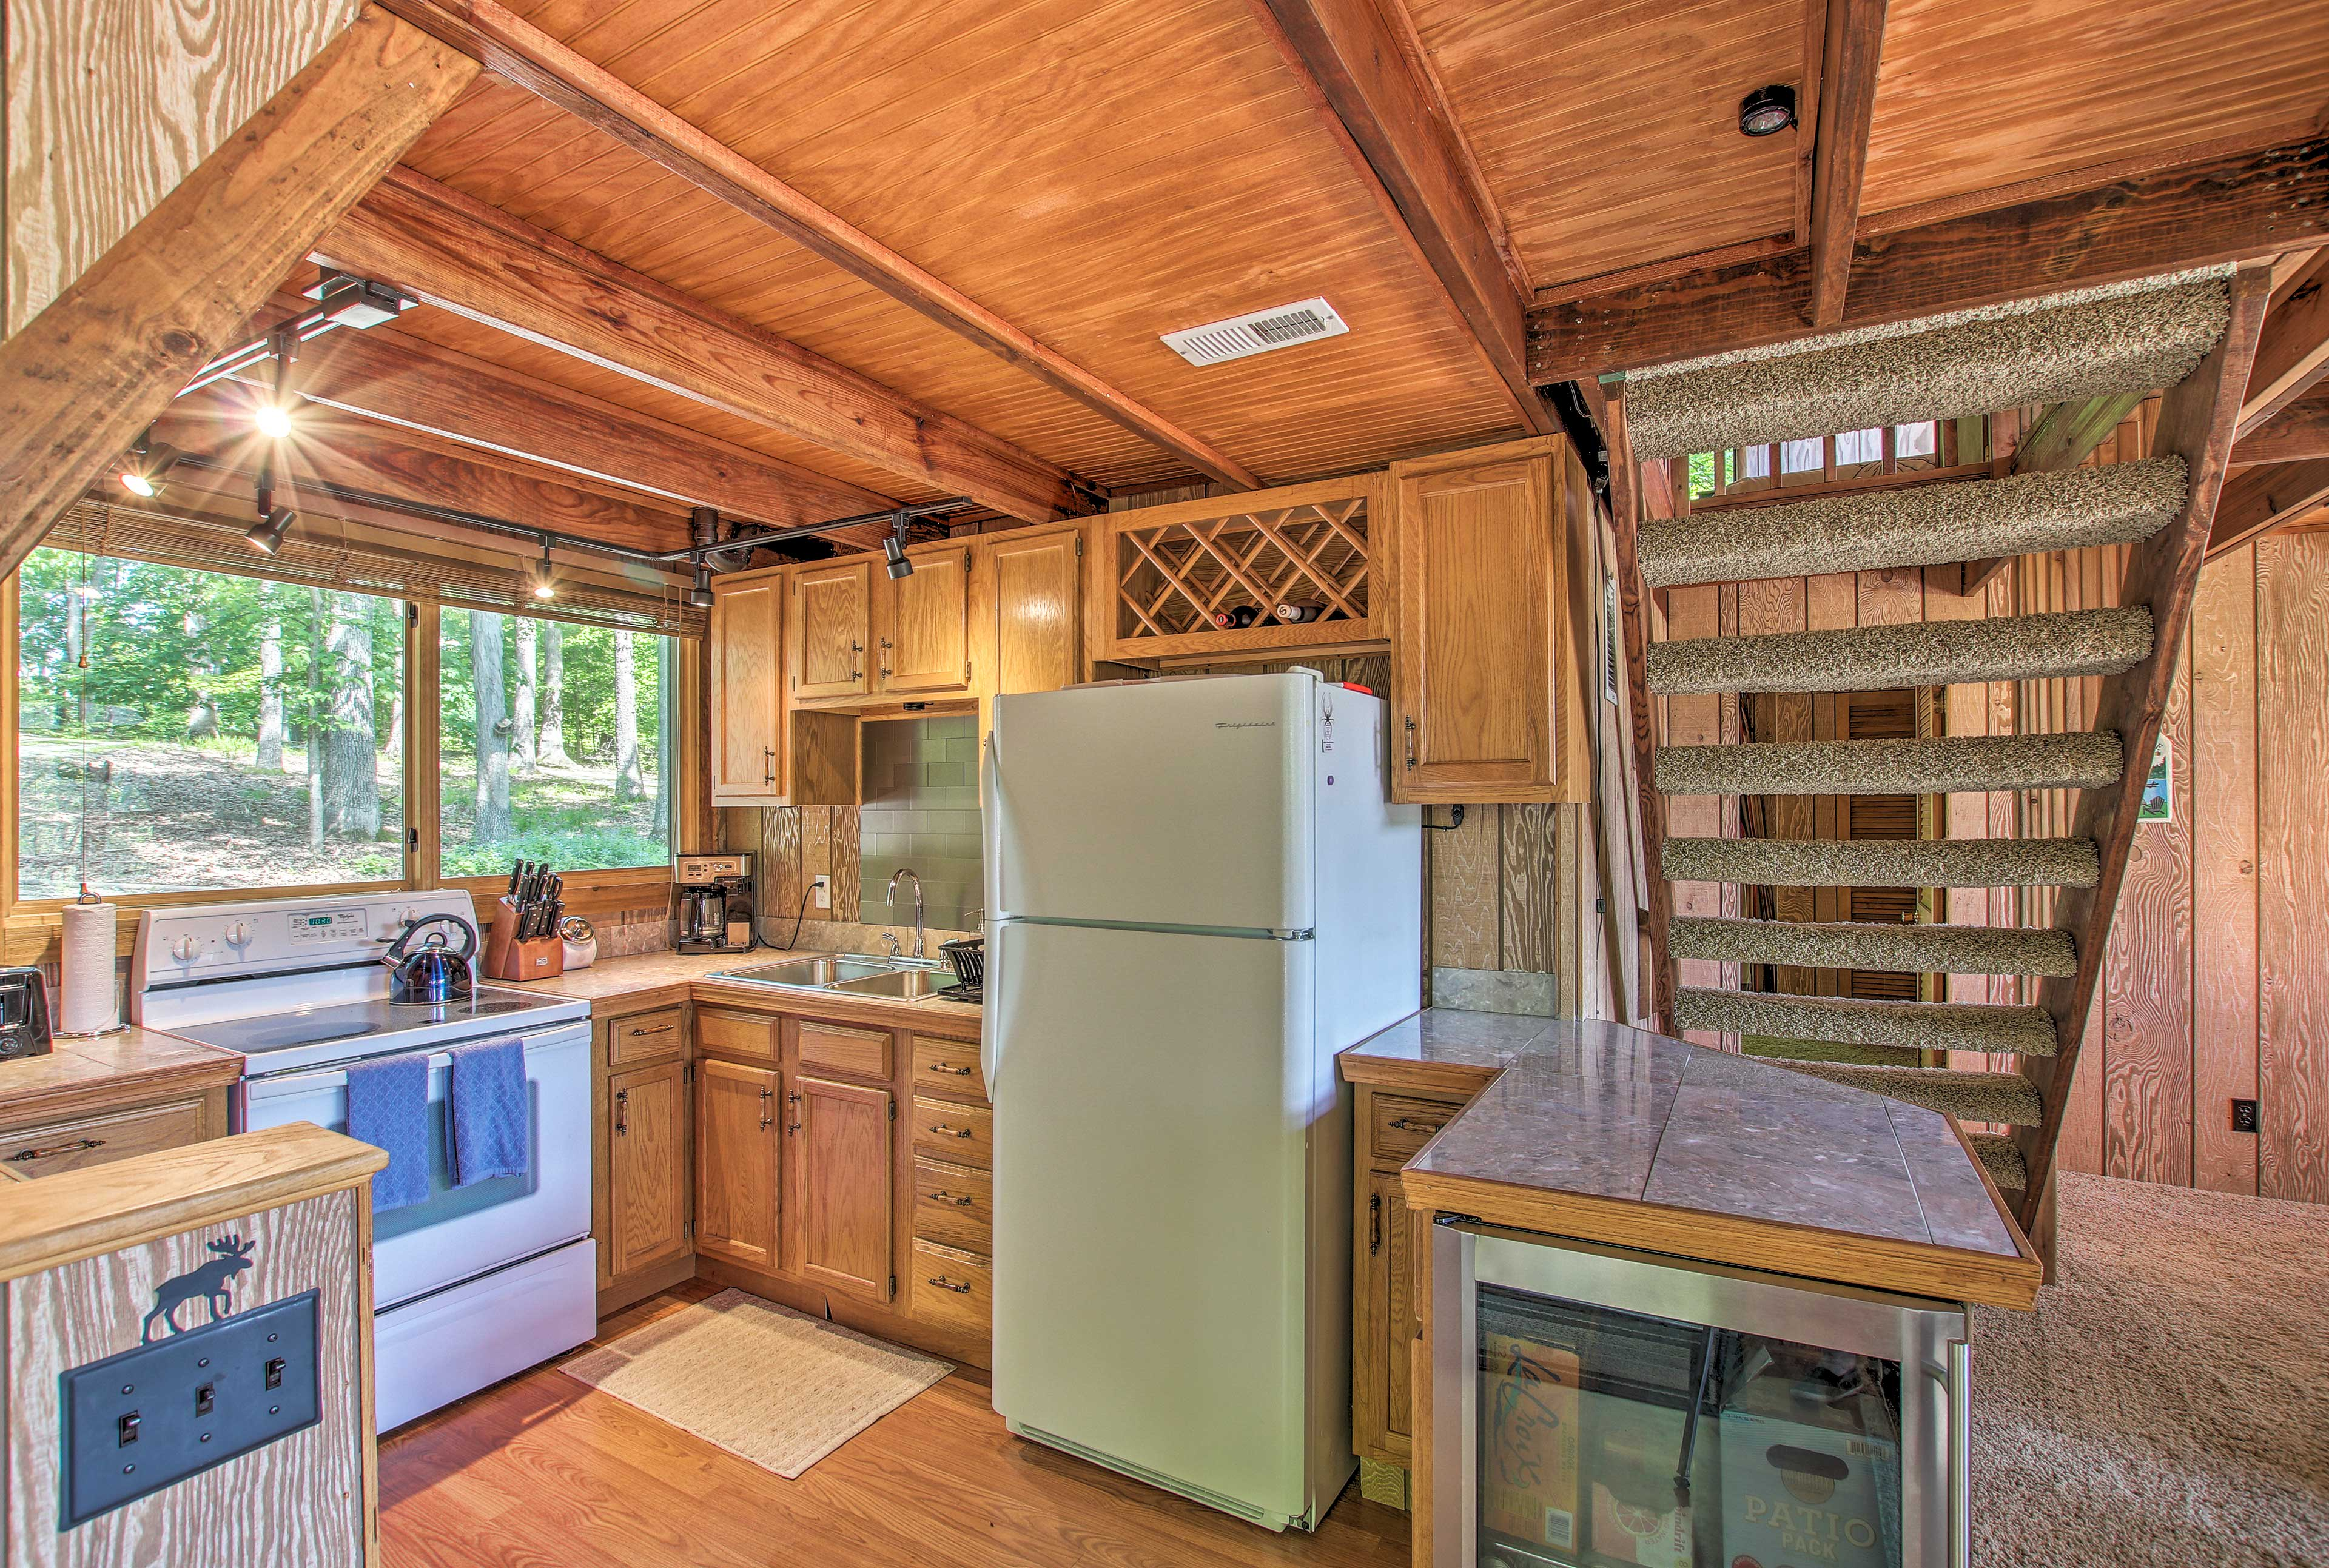 The kitchen is well equipped to handle your cooking needs.